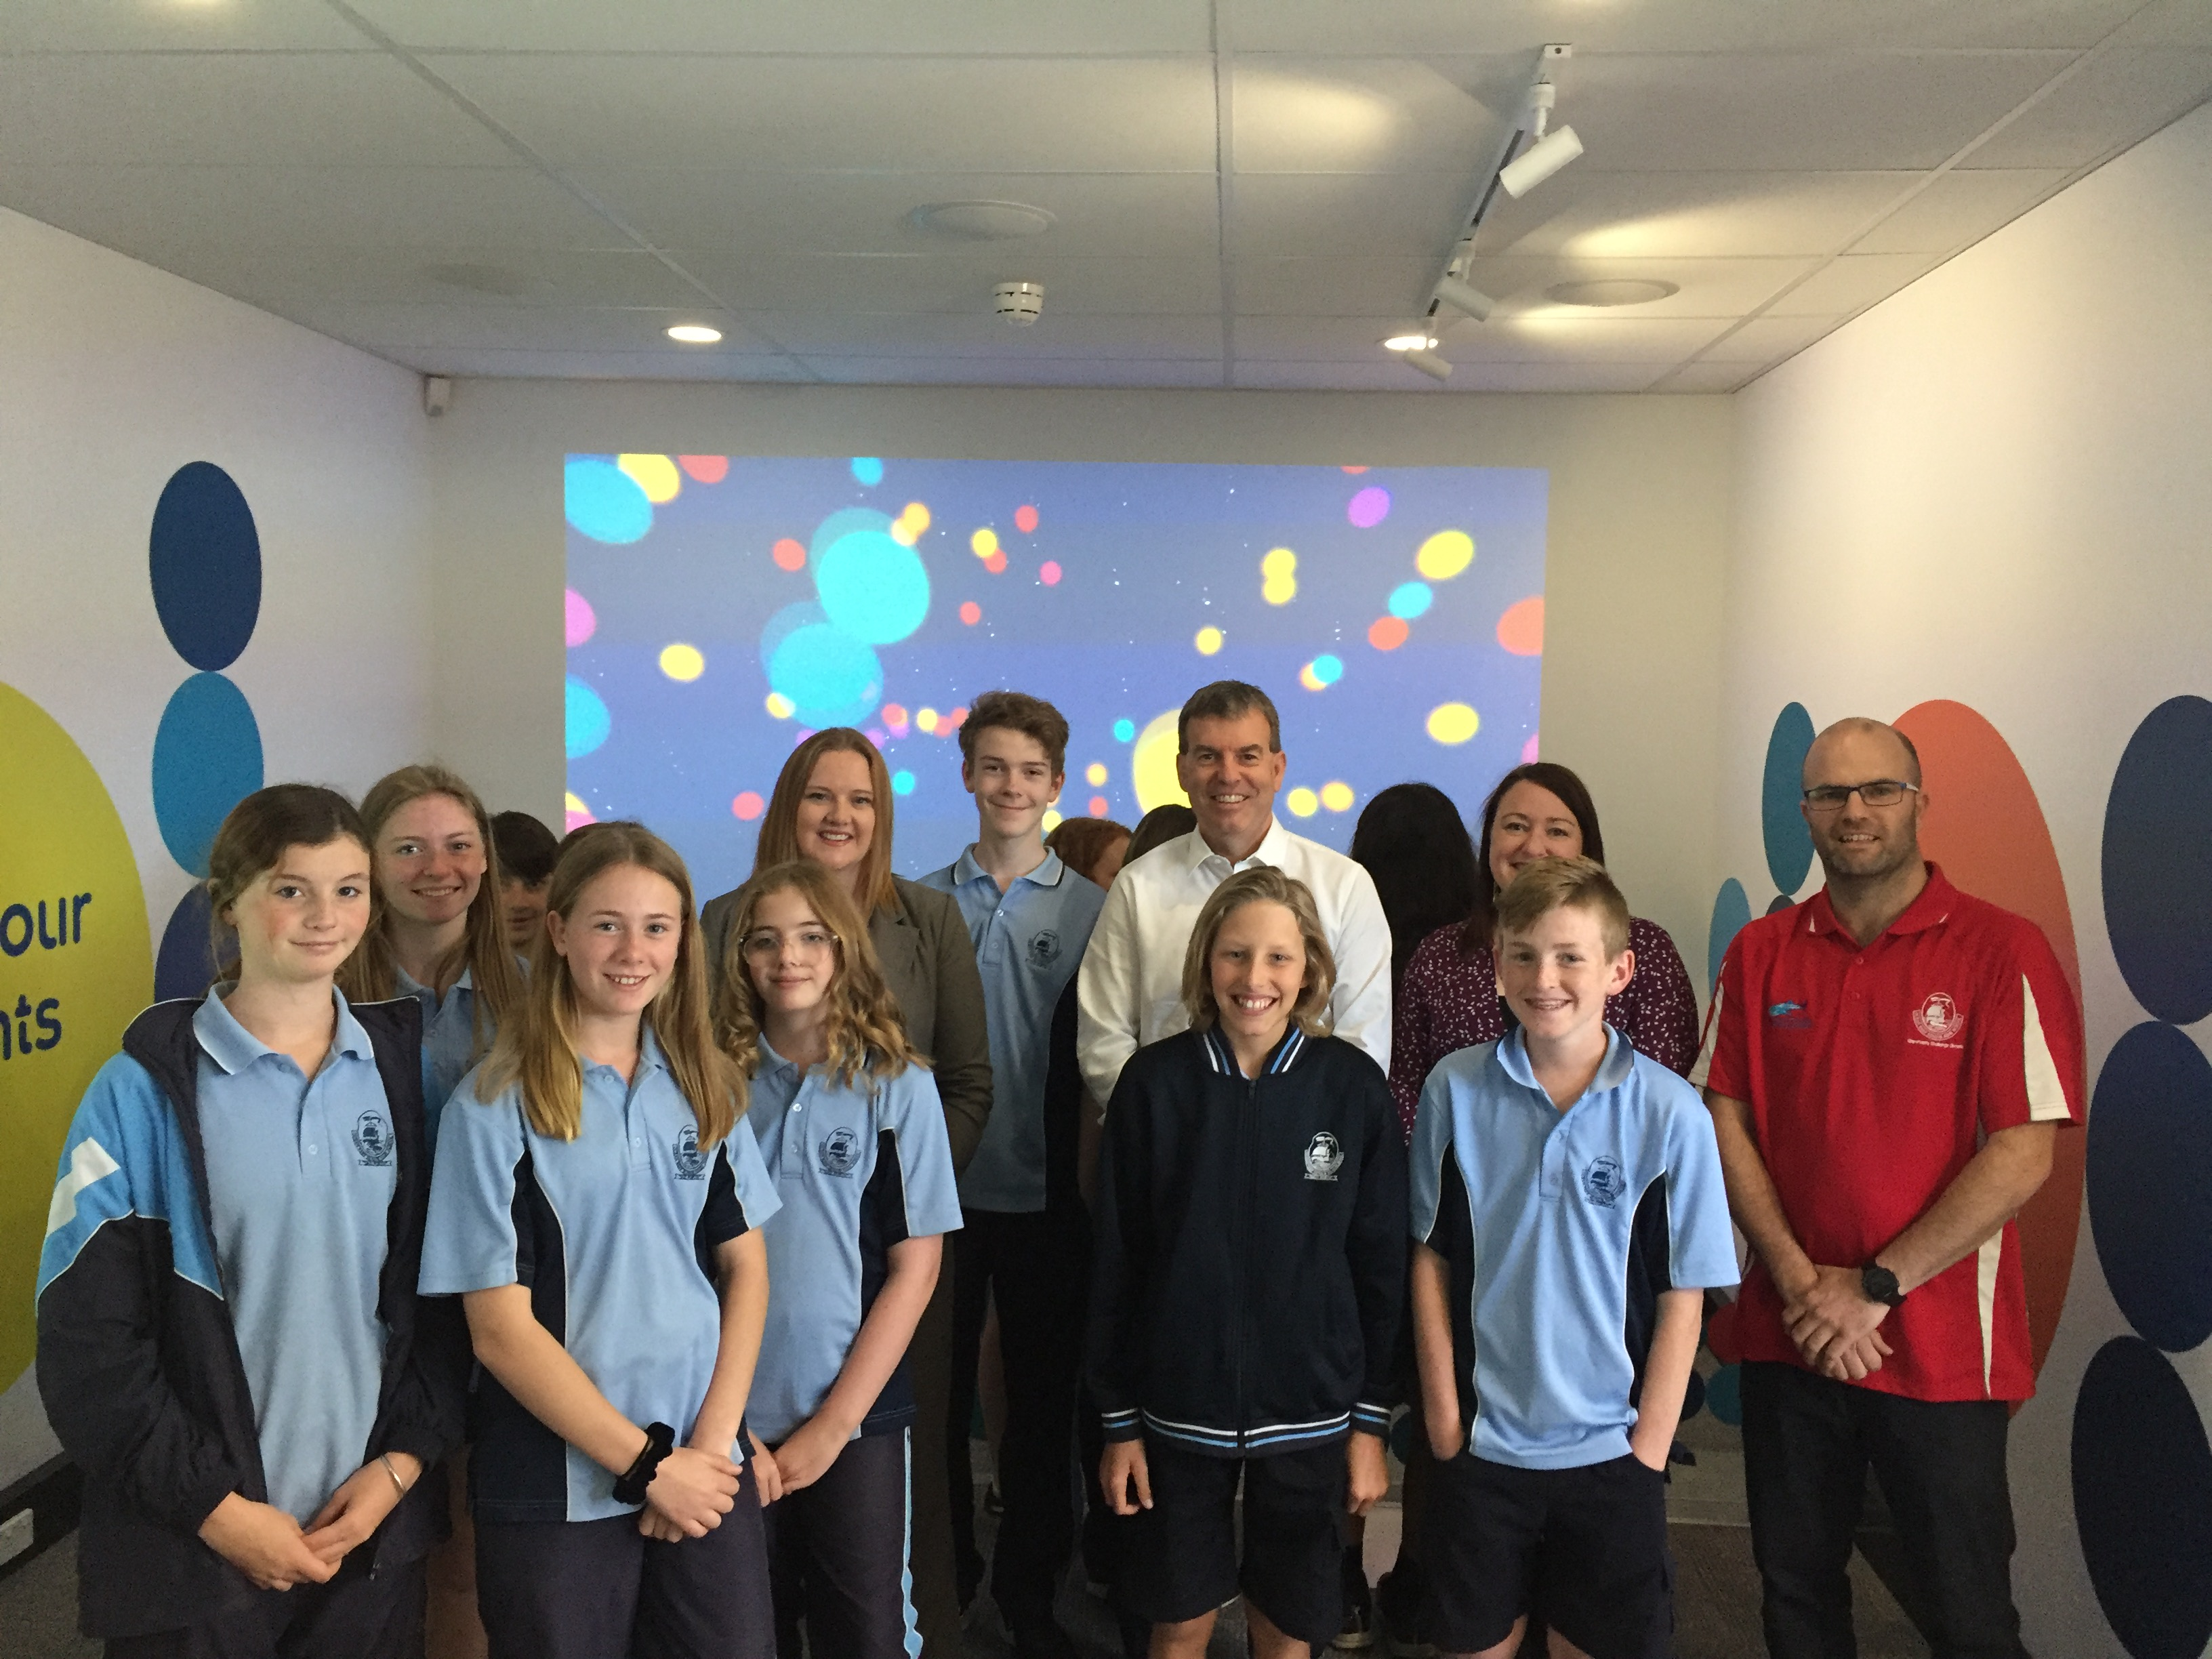 Minister for Water with students from Ocean Reef Senior High School